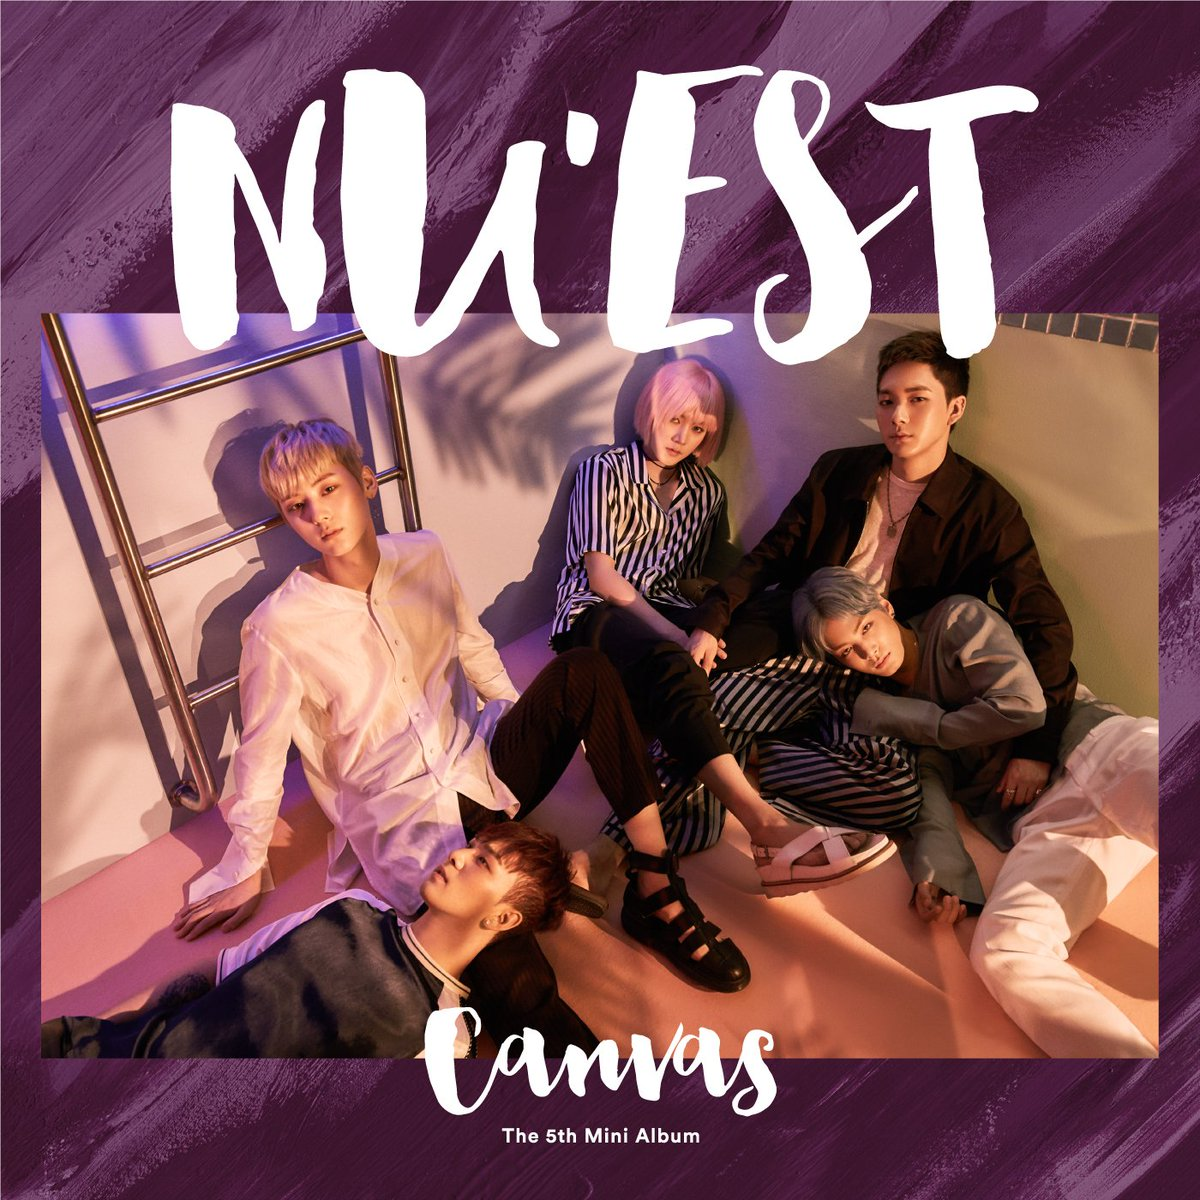 Image result for nuest canvas album